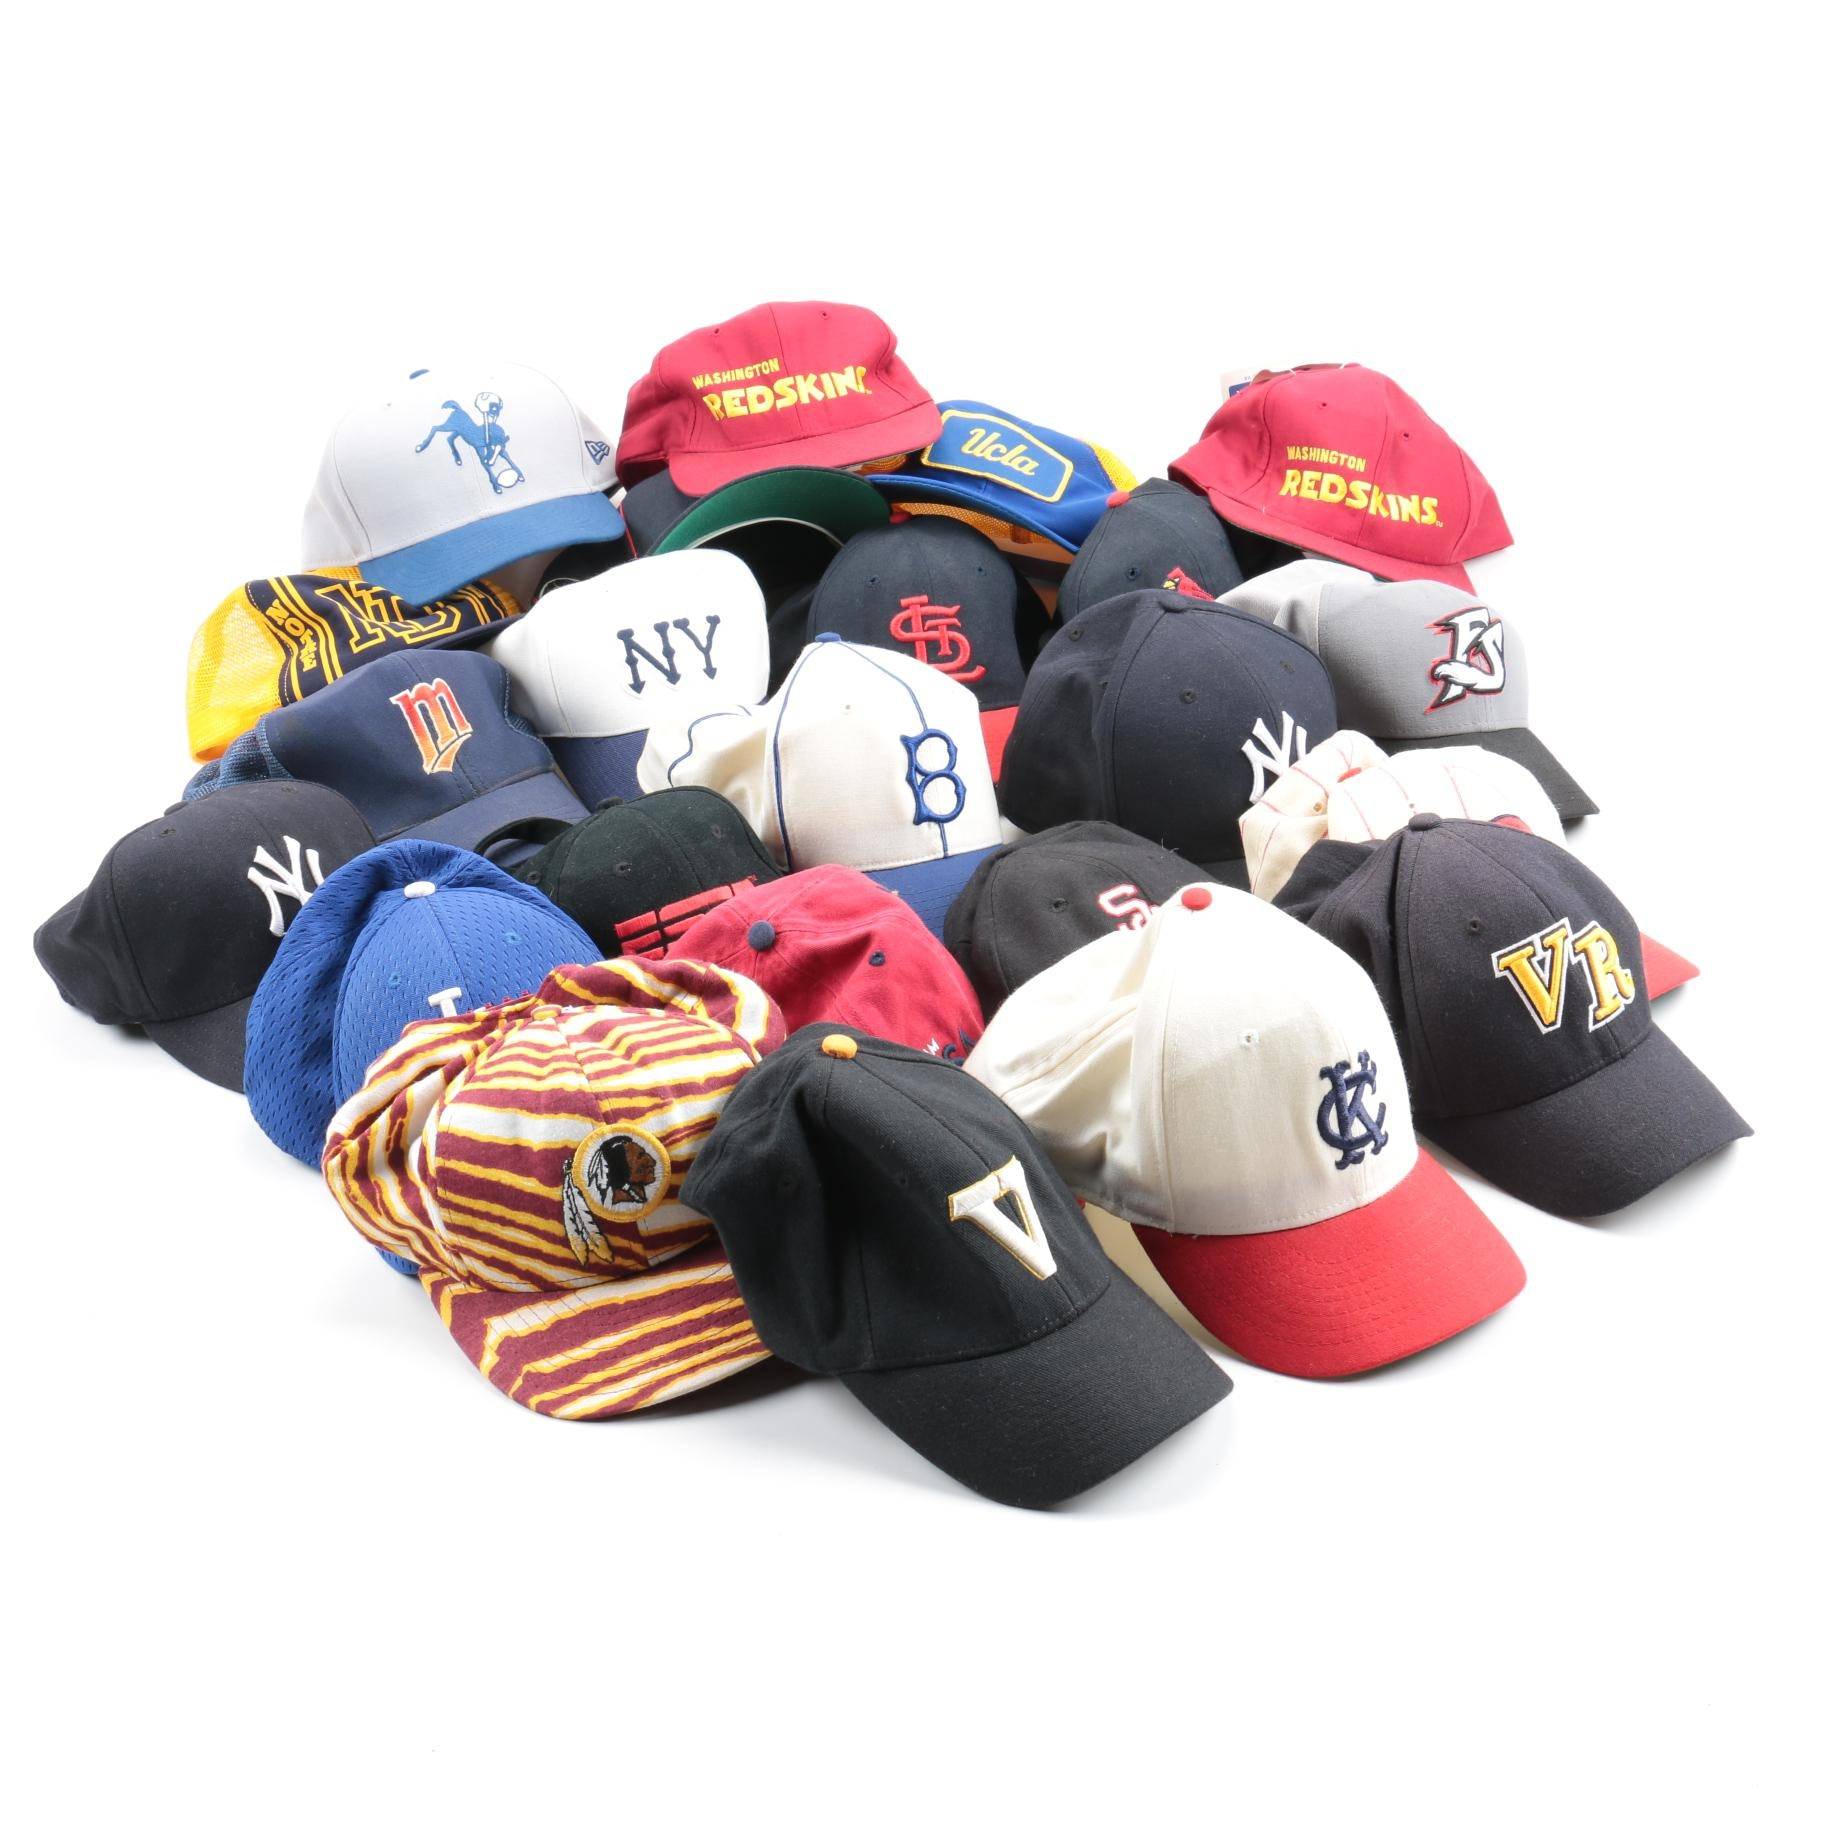 PRIORITY-Assortment of Sports Hats